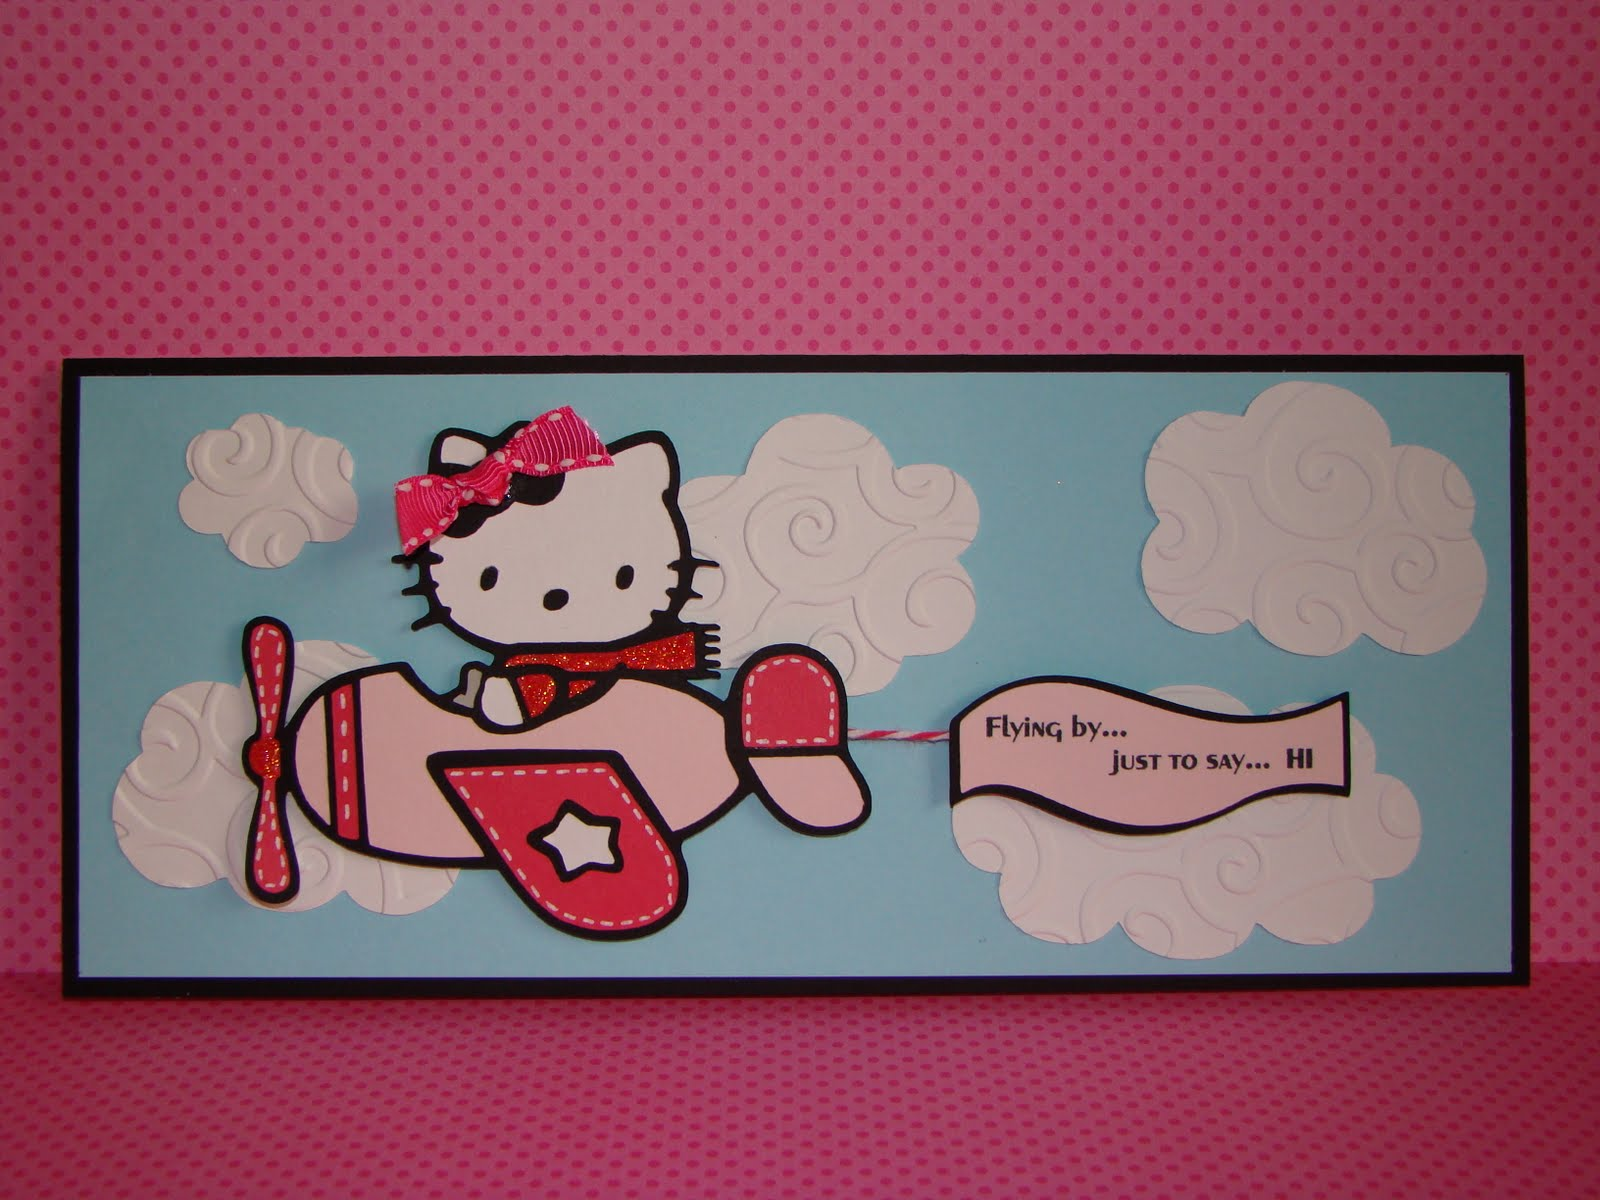 Creating with color by cassandra cricut 360 challenge blog so i decided to use the hello kitty greetings cricut cartridge for this super cute hello kitty flying the airplane unfortunately when i went back to the m4hsunfo